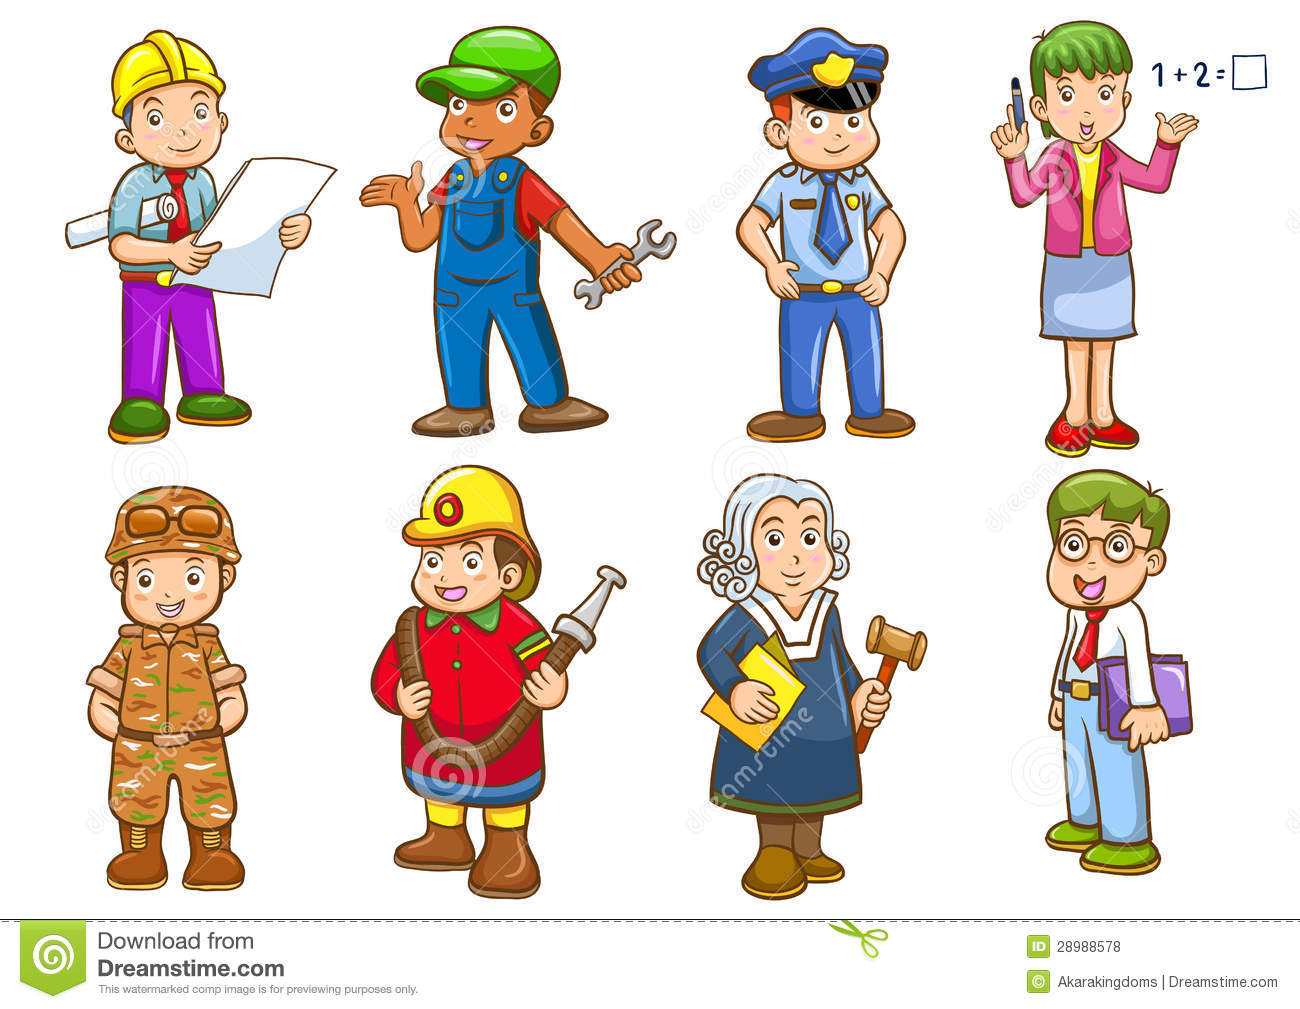 Occupation images clipart clip freeuse stock Occupation Clip Art For Kids | Clipart Panda - Free Clipart Images clip freeuse stock